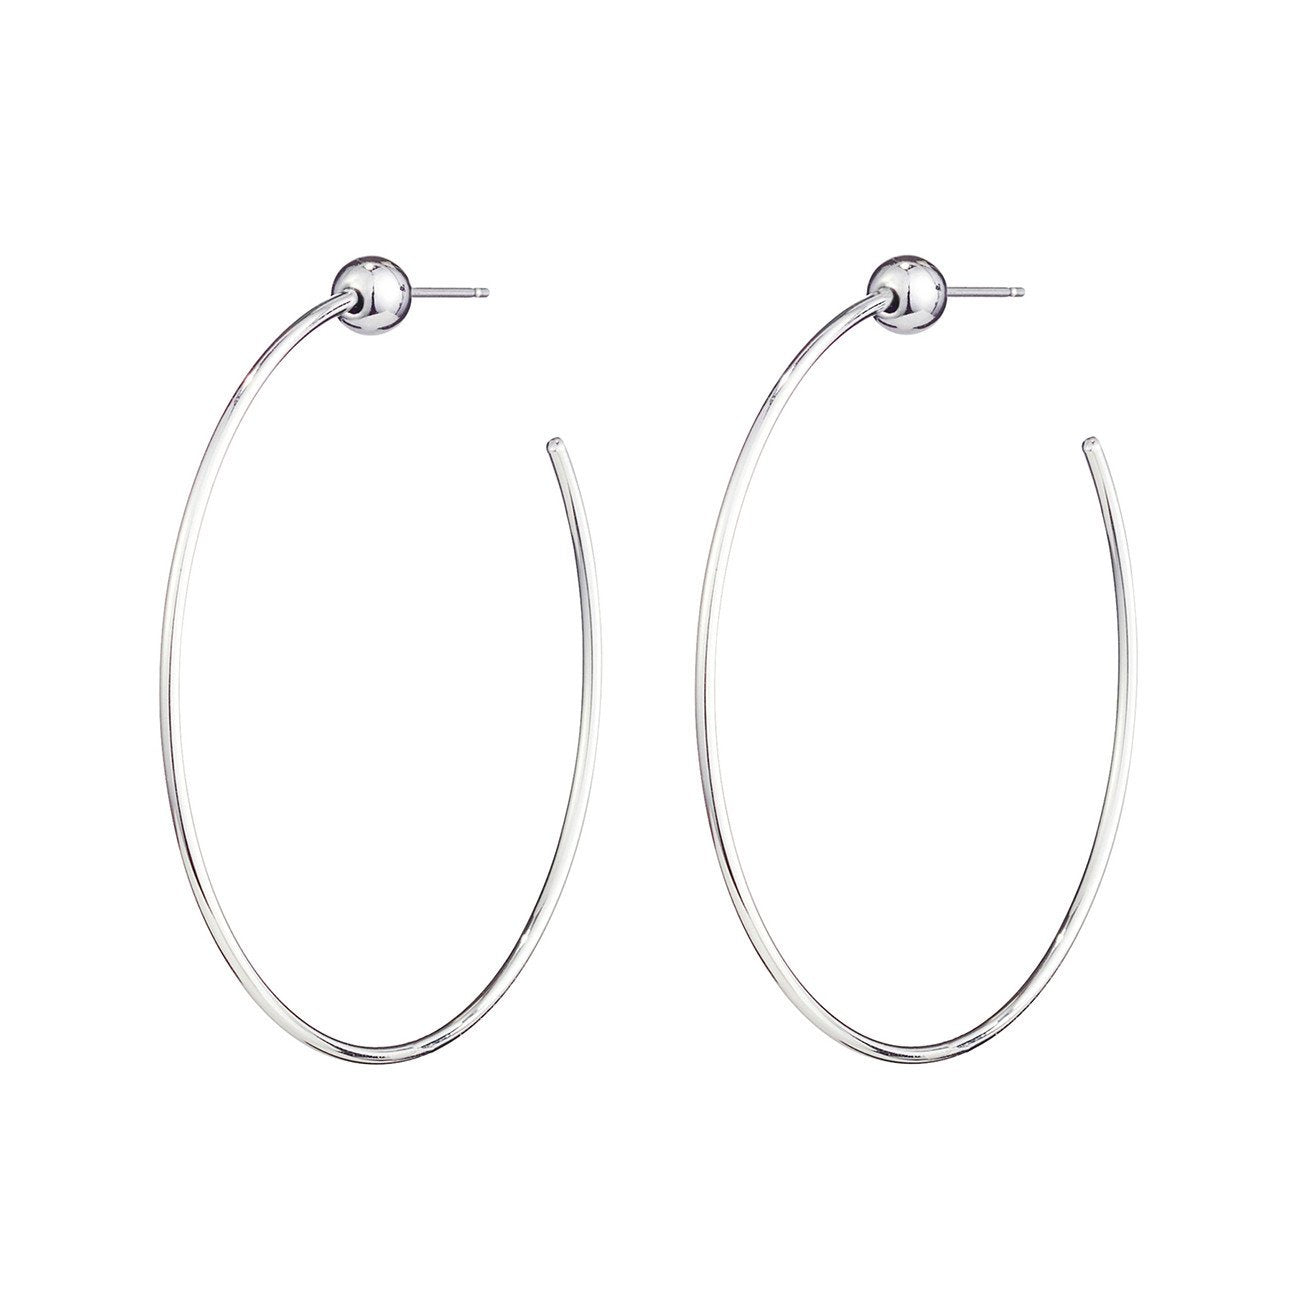 JENNY BIRD - ICON HOOPS S IN RHODIUM/SILVER